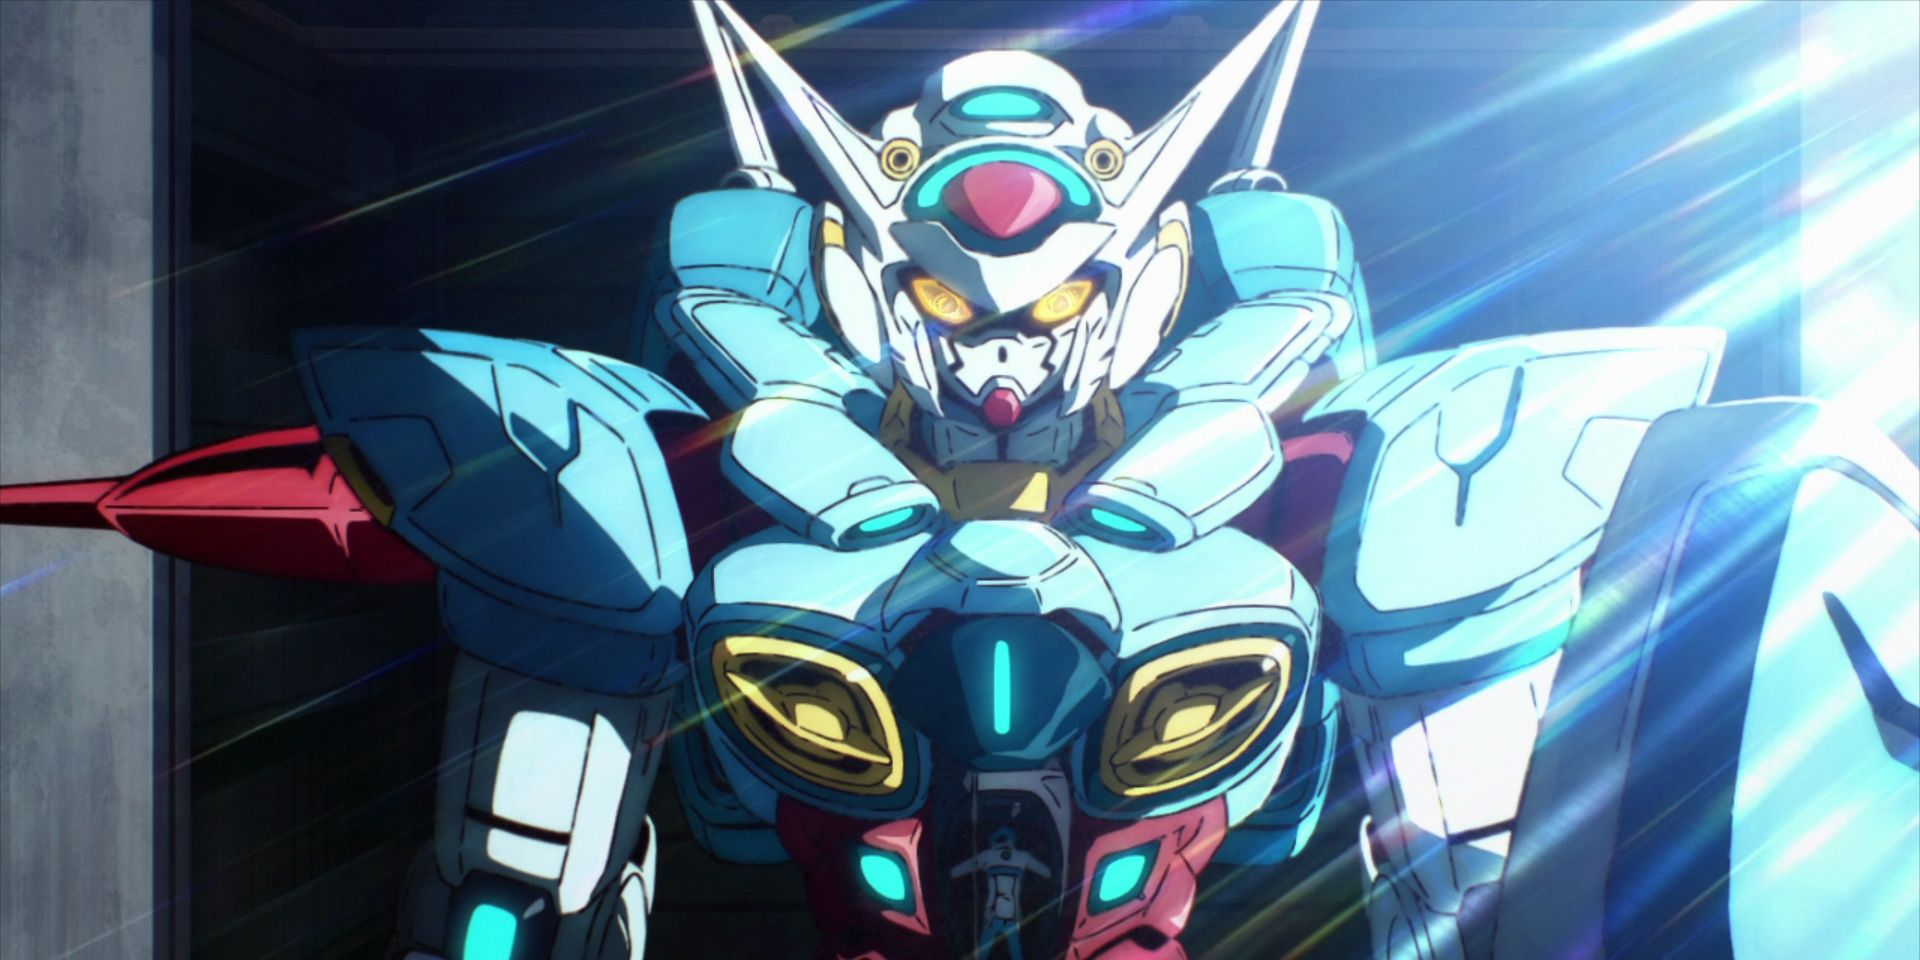 10 Things That Didn't Age Well In Mobile Suit Gundam